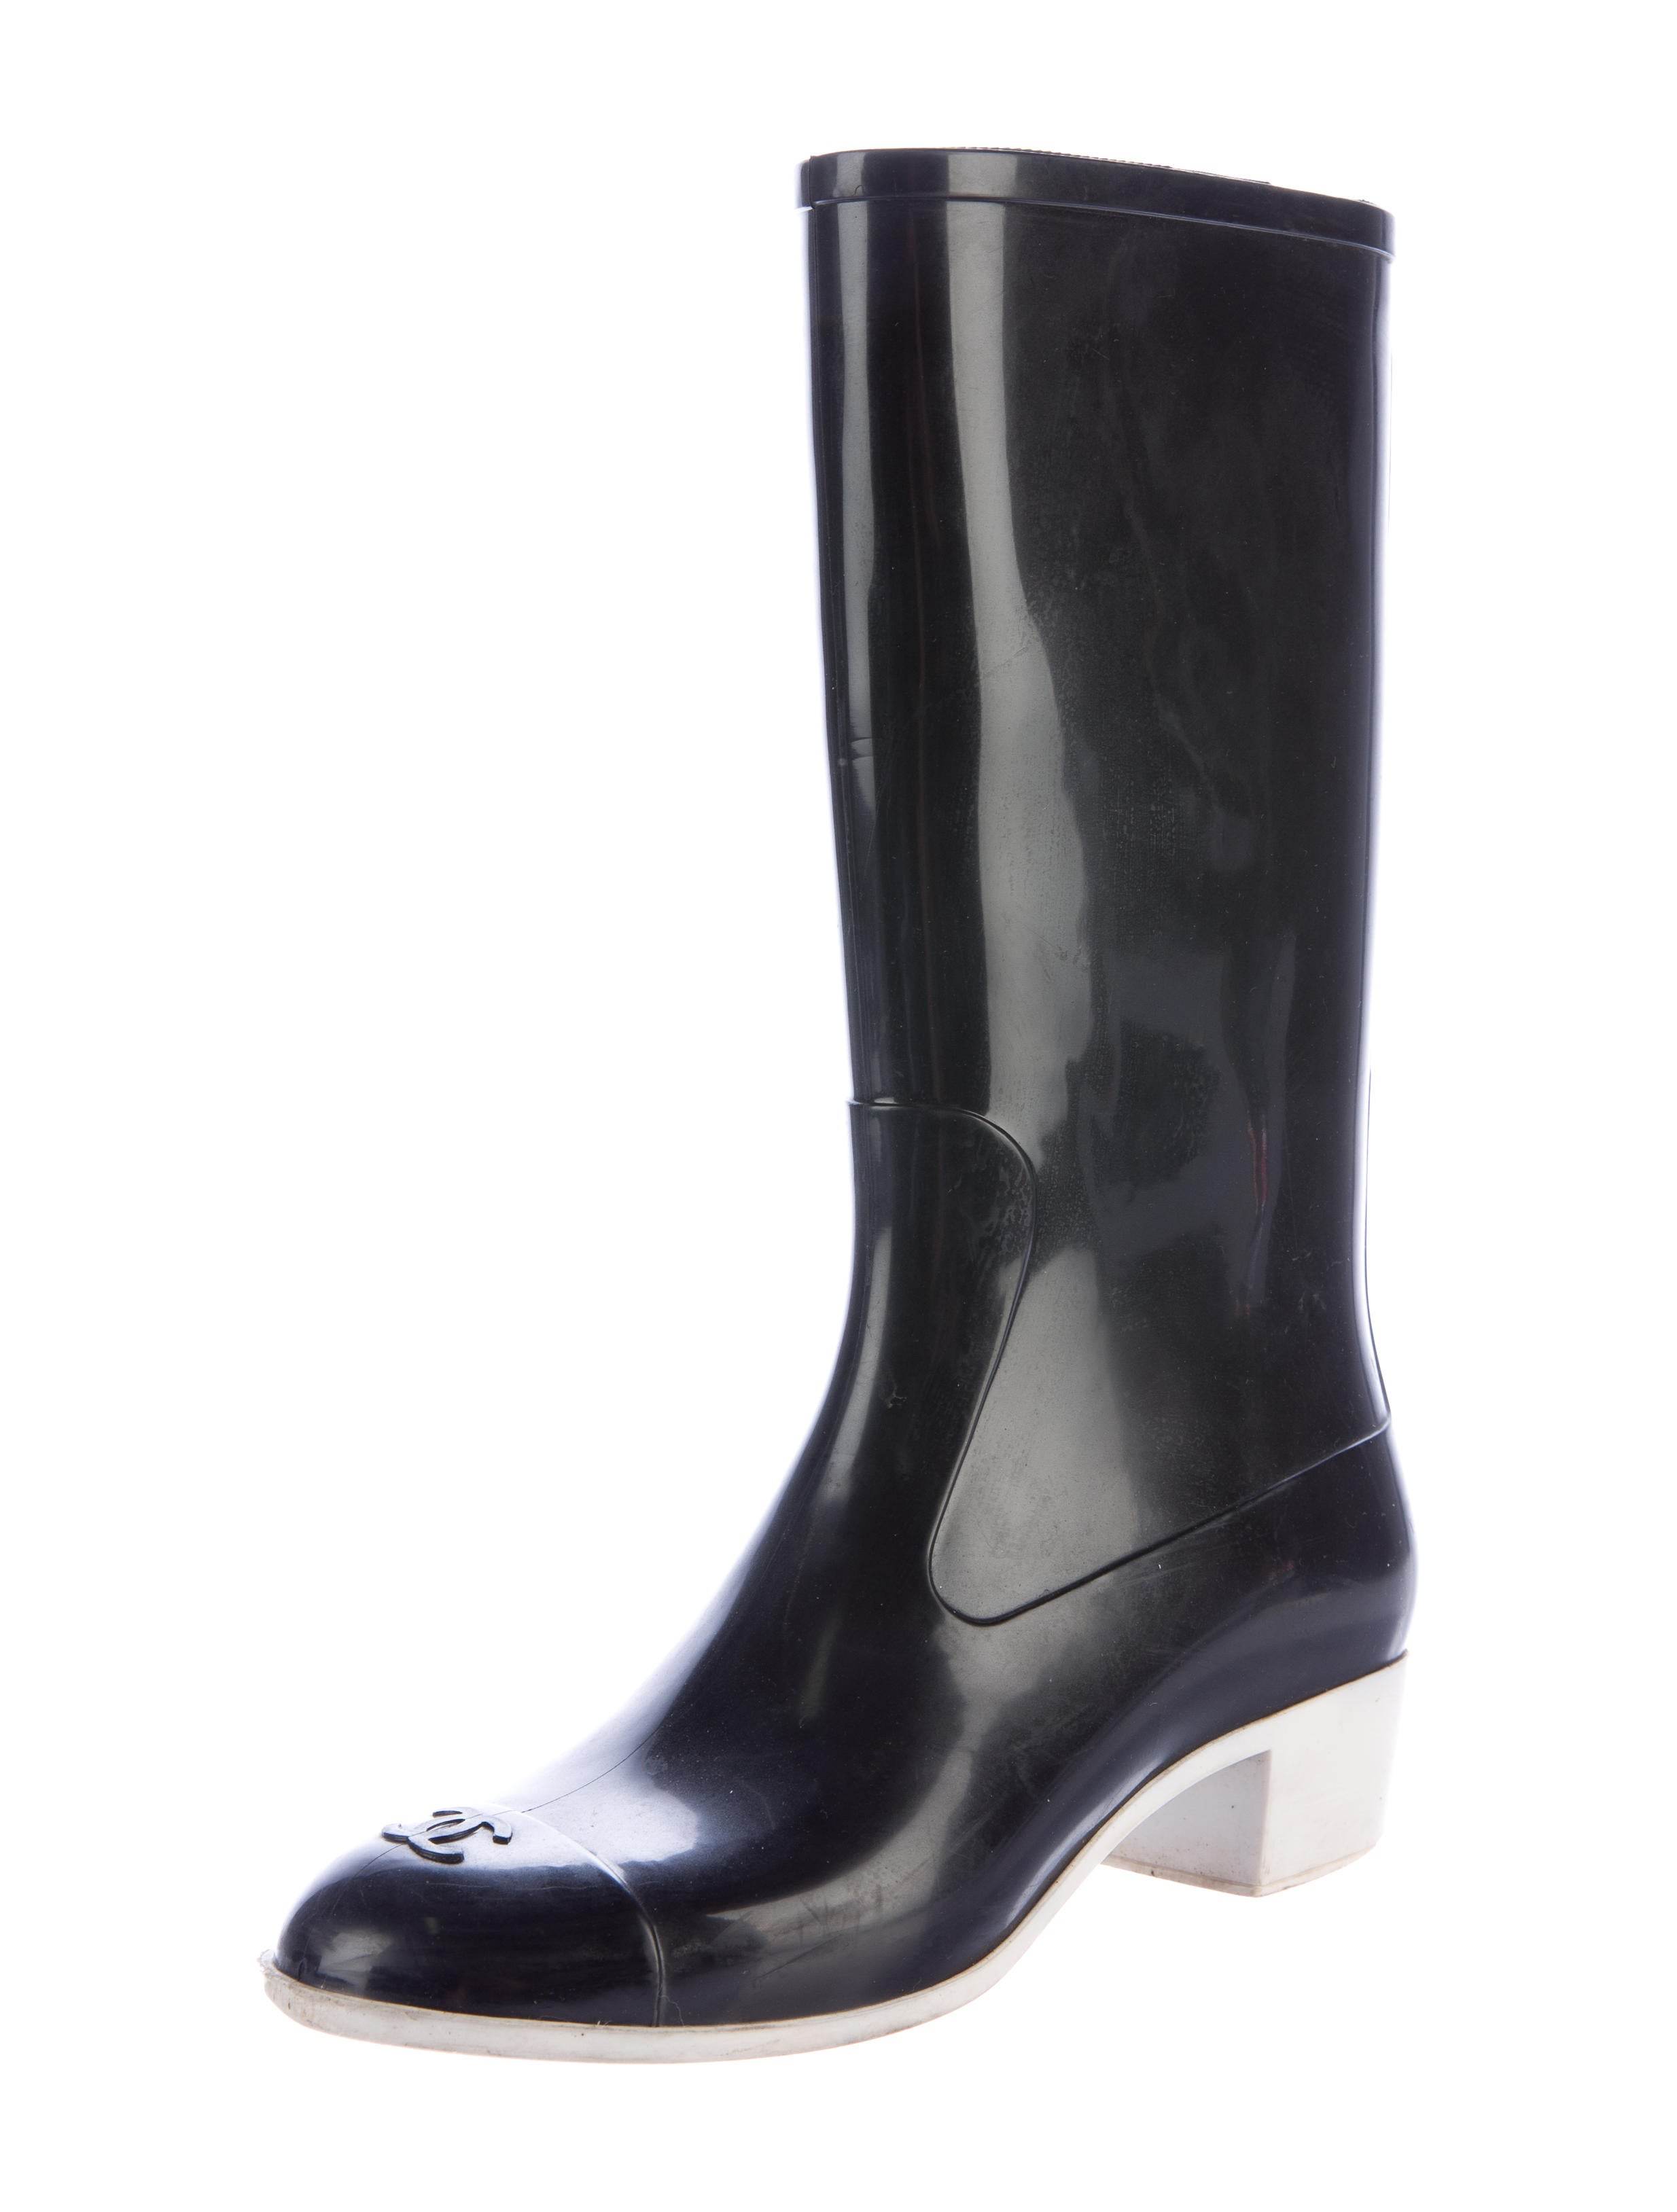 chanel cc boots shoes cha167733 the realreal